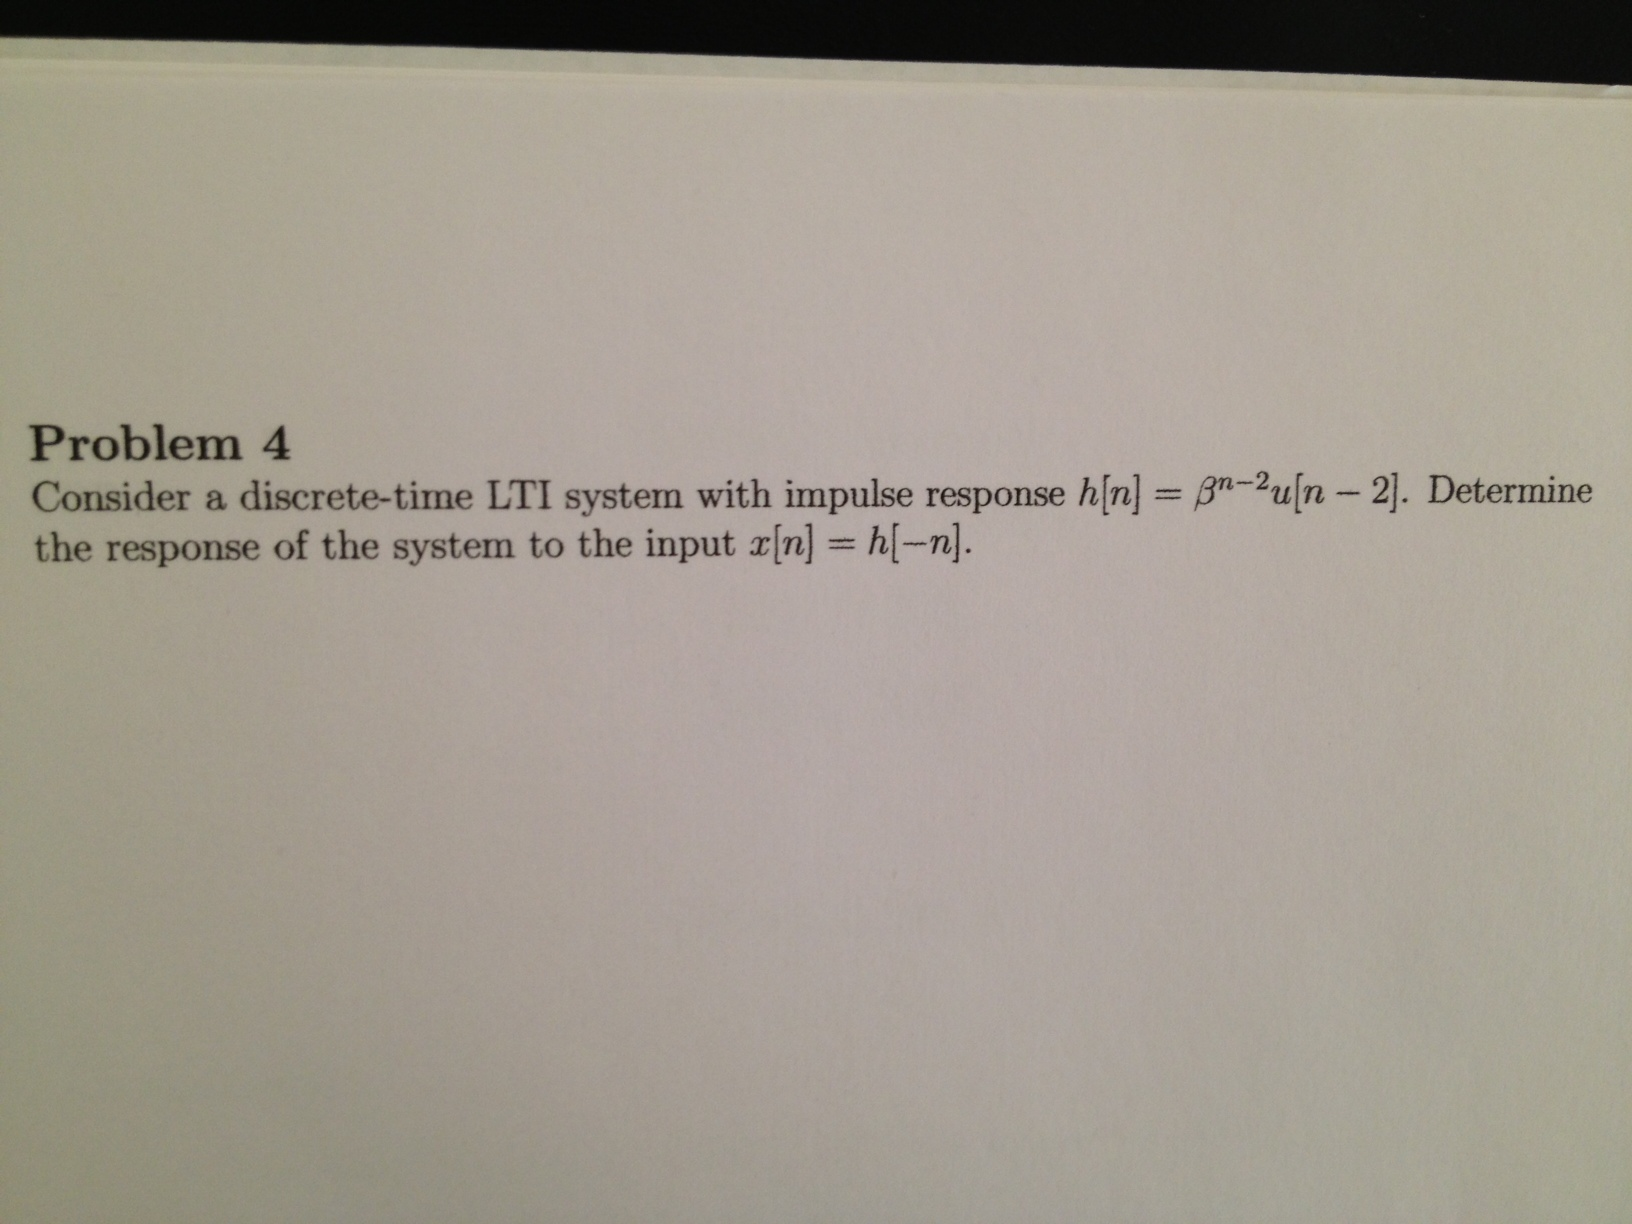 Problem 4 Consider a discrete-time LTI system with